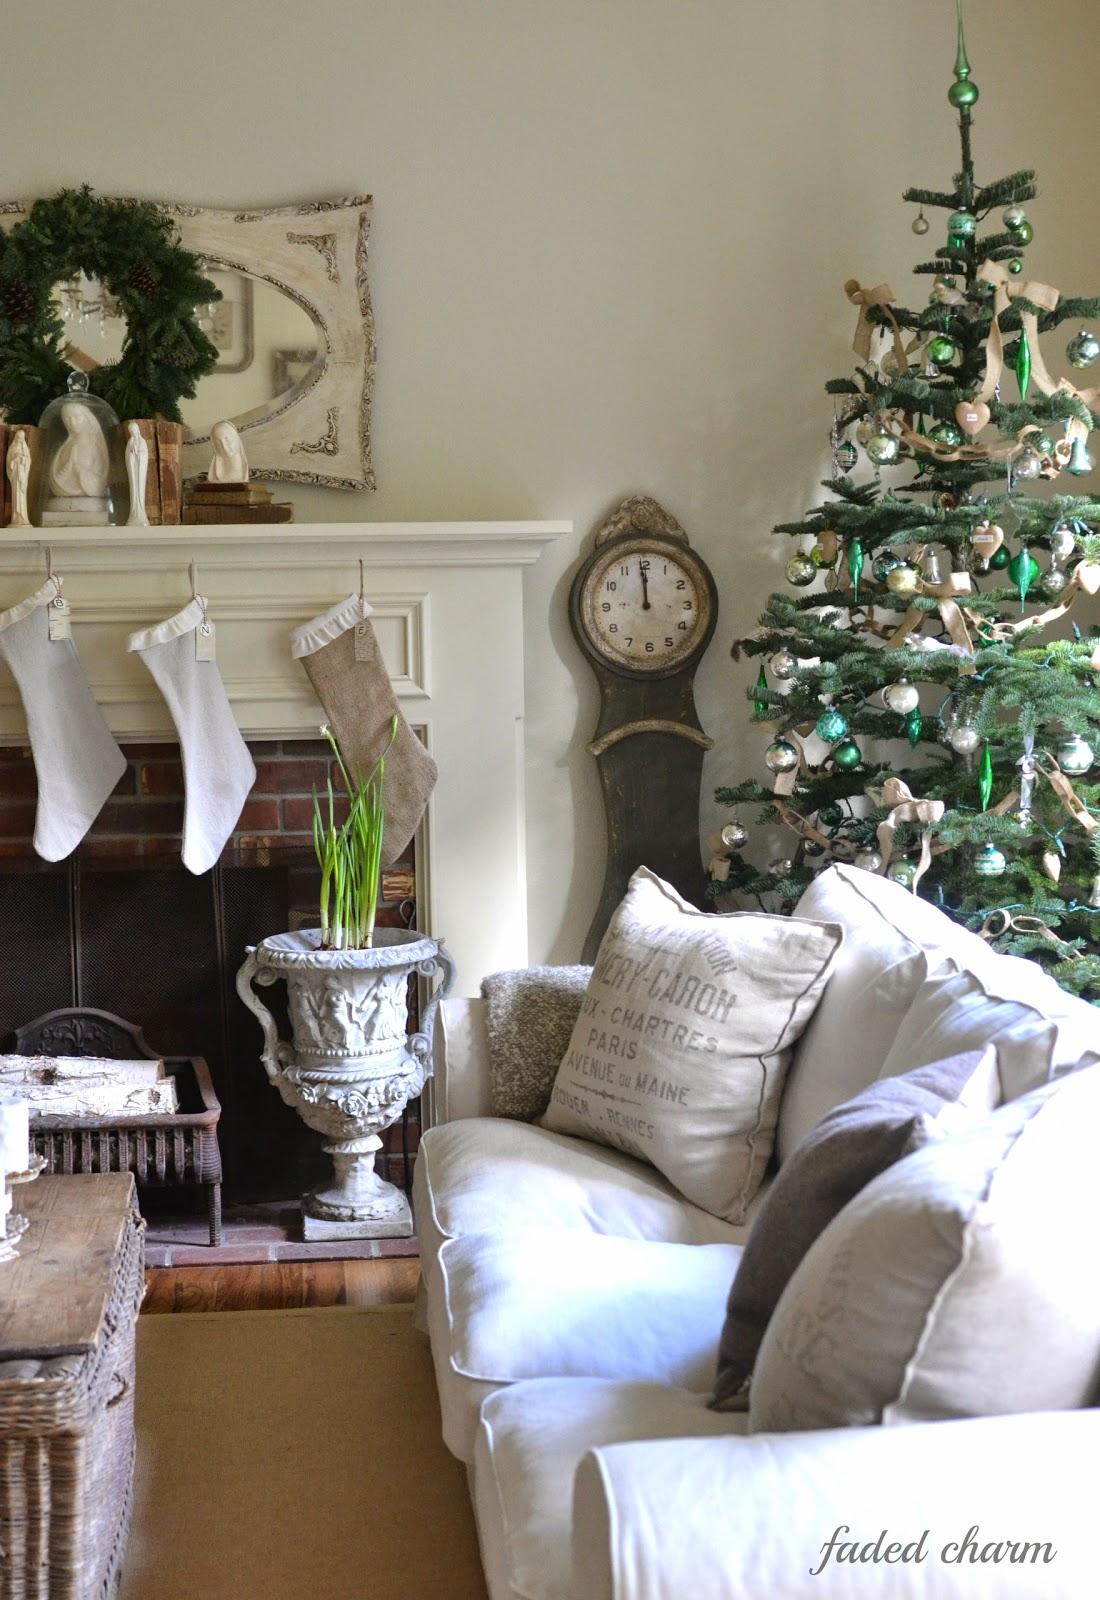 15 Sparse Christmas Trees - love this beautiful tree with green and silver vintage ornaments kellyelko.com #christmas #christmastree #sparsechristmastree #vintagechristmas #christmasdecor #christmasedecorating #christmasdecoratingideas #farmhousechristmas #christmasornaments #neutralchristmas #silvertip #kellyelko